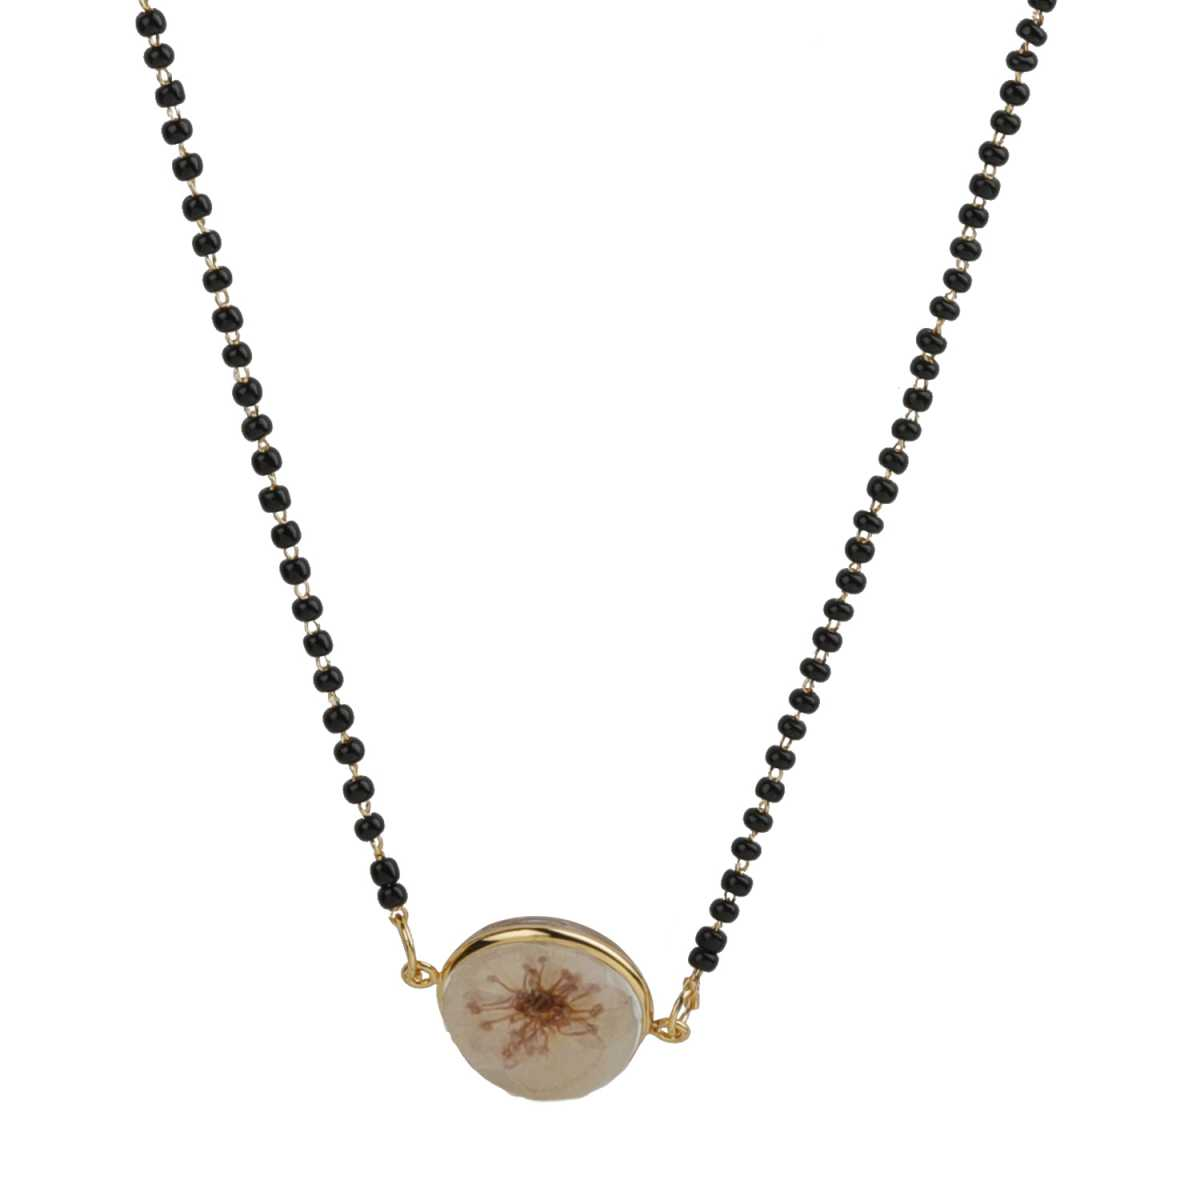 Silver Shine Lovely Black Single Beads Mangulsutra With Pendent Jewellry Of 17 Inch Chain For Women/ Housewife